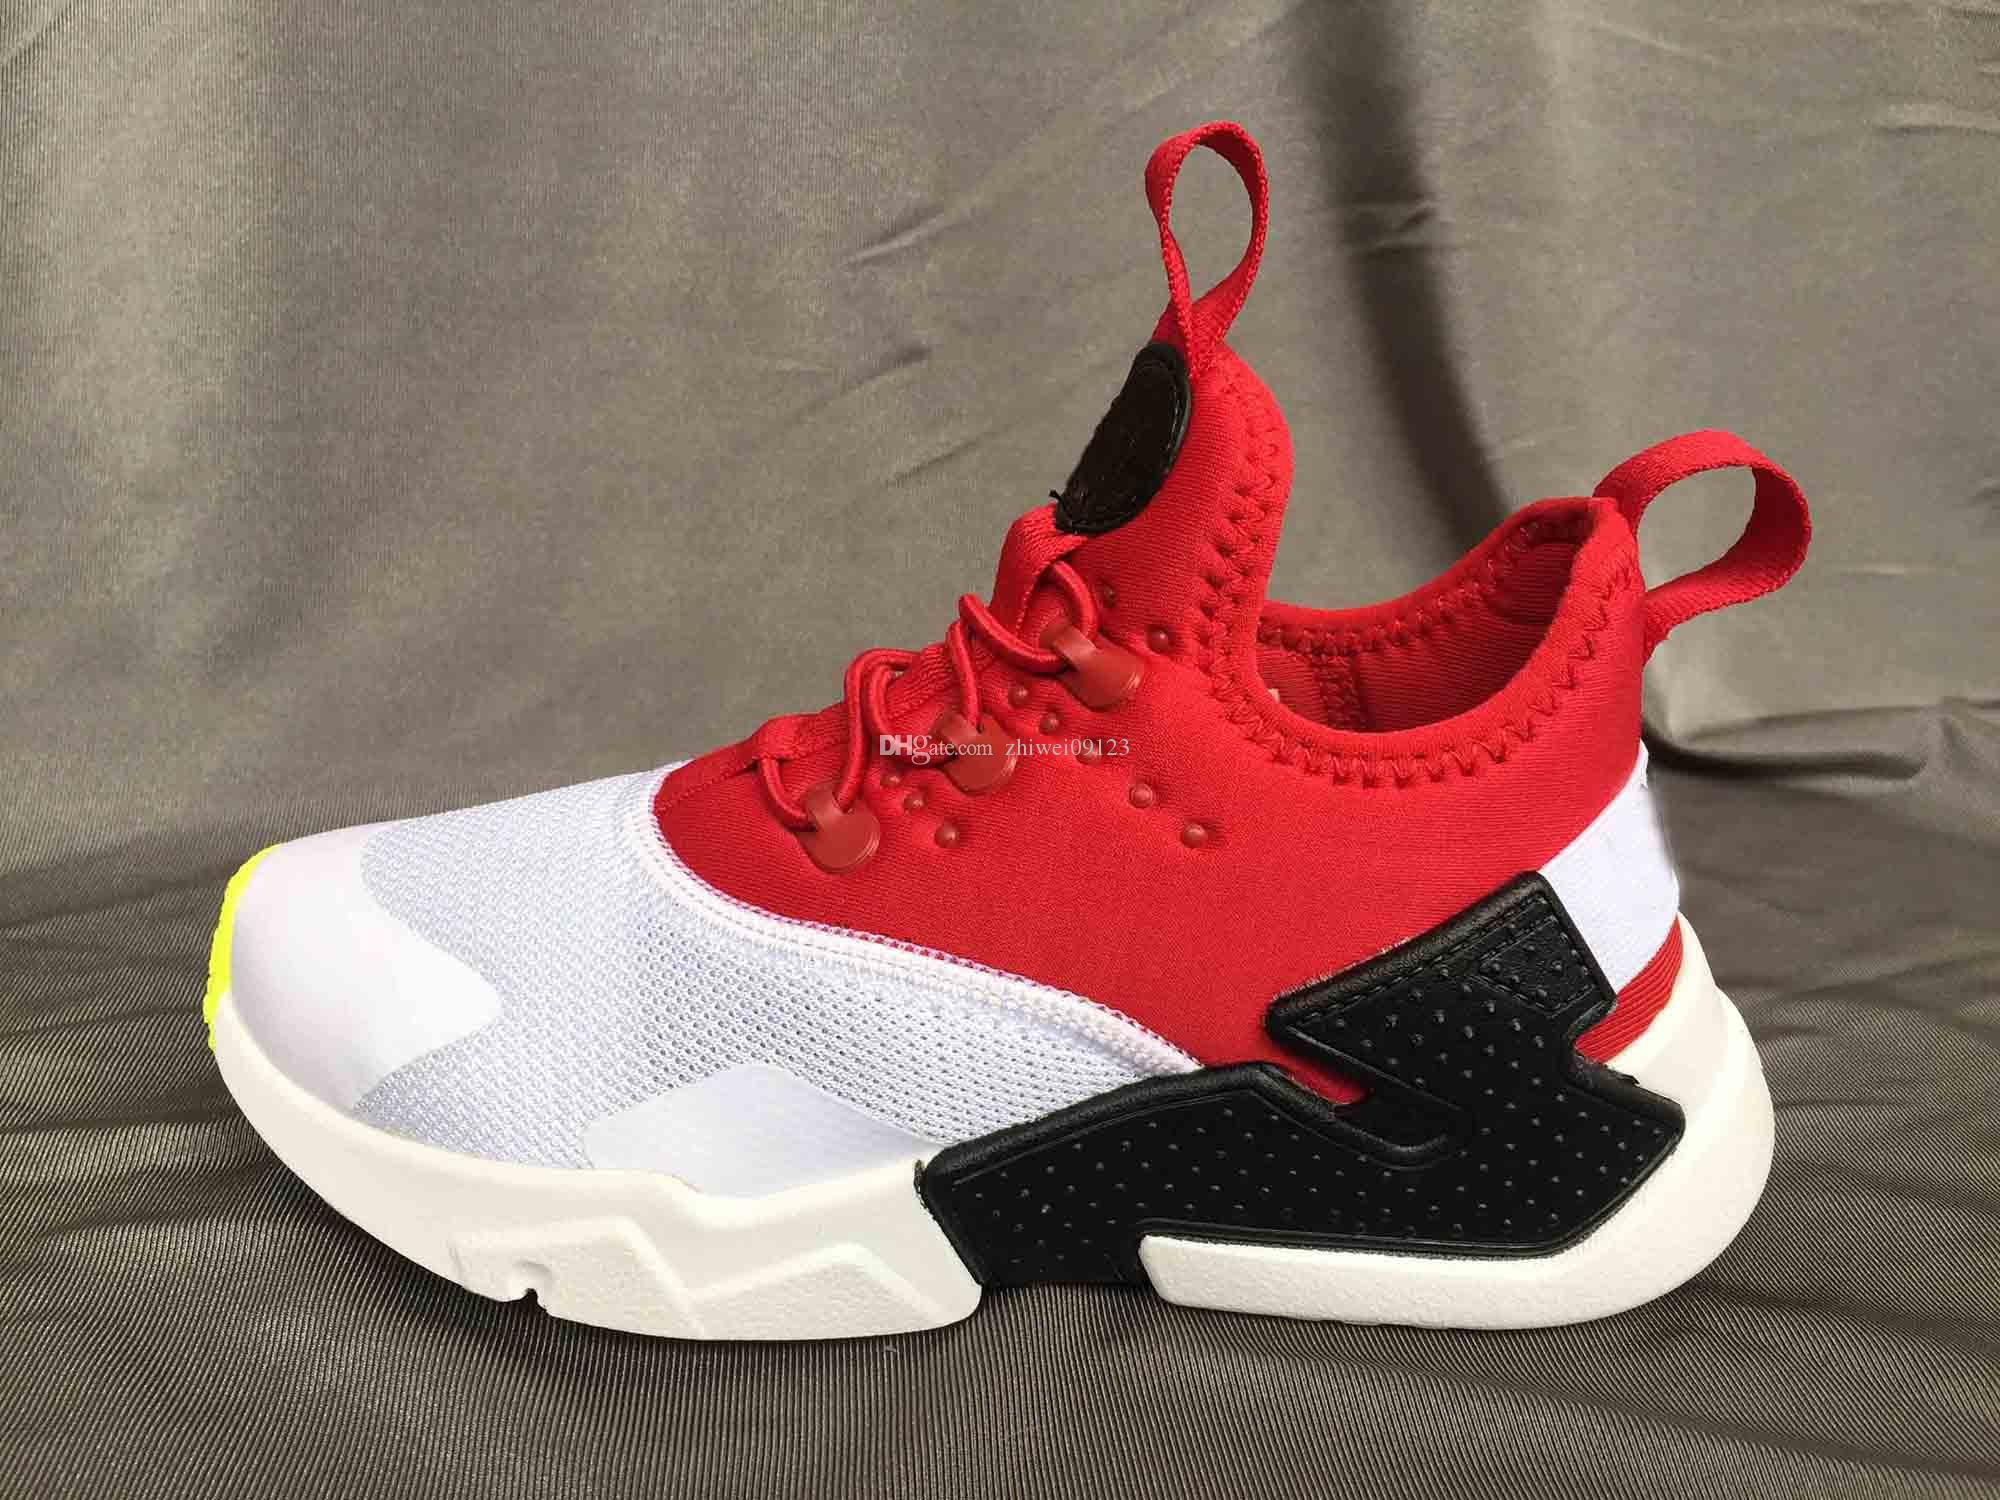 c87b7c474ec New Kids Air Huarache Sneakers Shoes For Boys Grils Authentic All White  Children S Trainers Huaraches Sport Running Shoes Size 28 35 Girl Running  Shoes ...